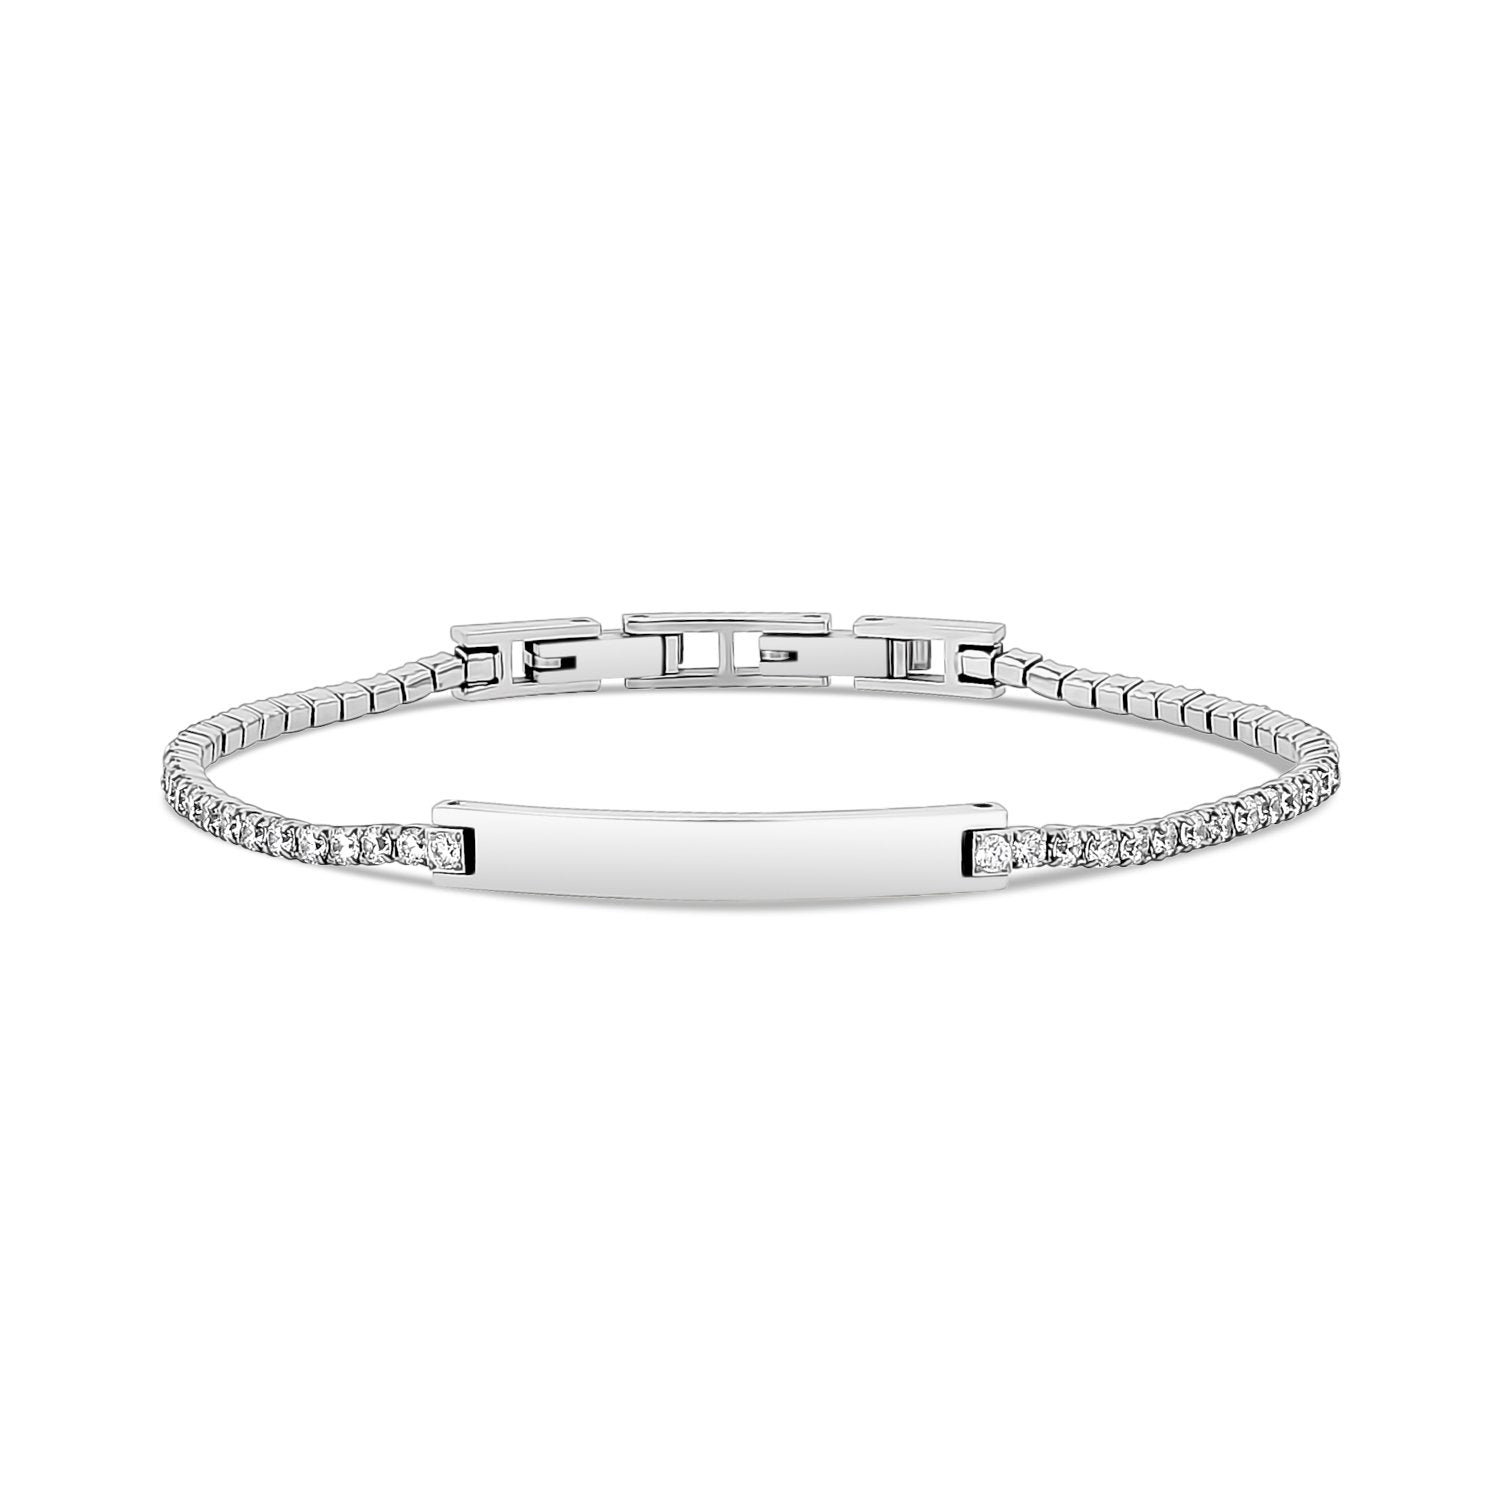 Women Bracelet - 2mm Cubic Zircon Steel Tennis ID Bracelet - Engravable